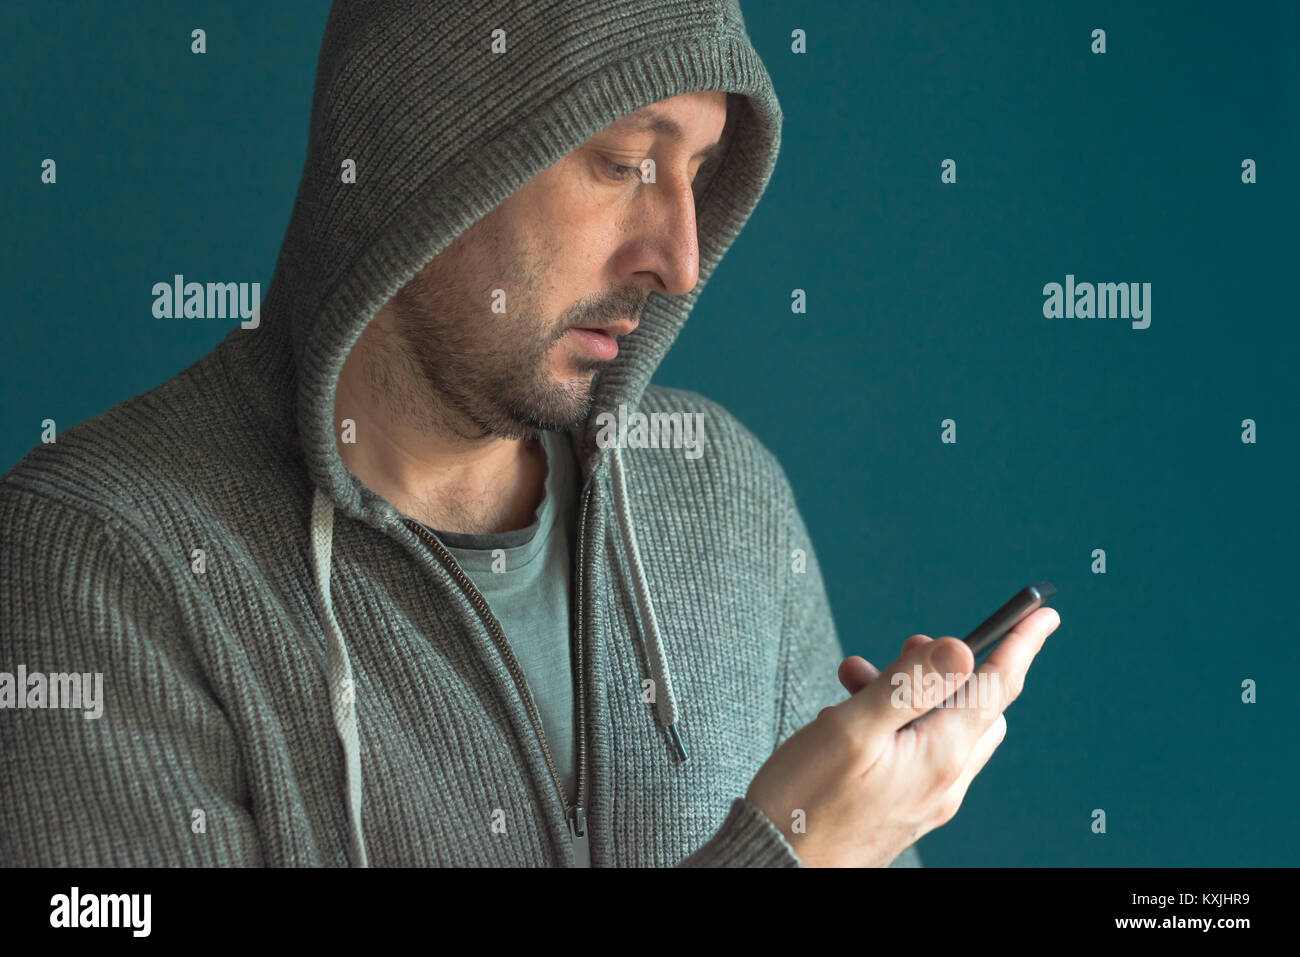 Casual man looking at mobile phone screen and reading app notification or sms text message - Stock Image